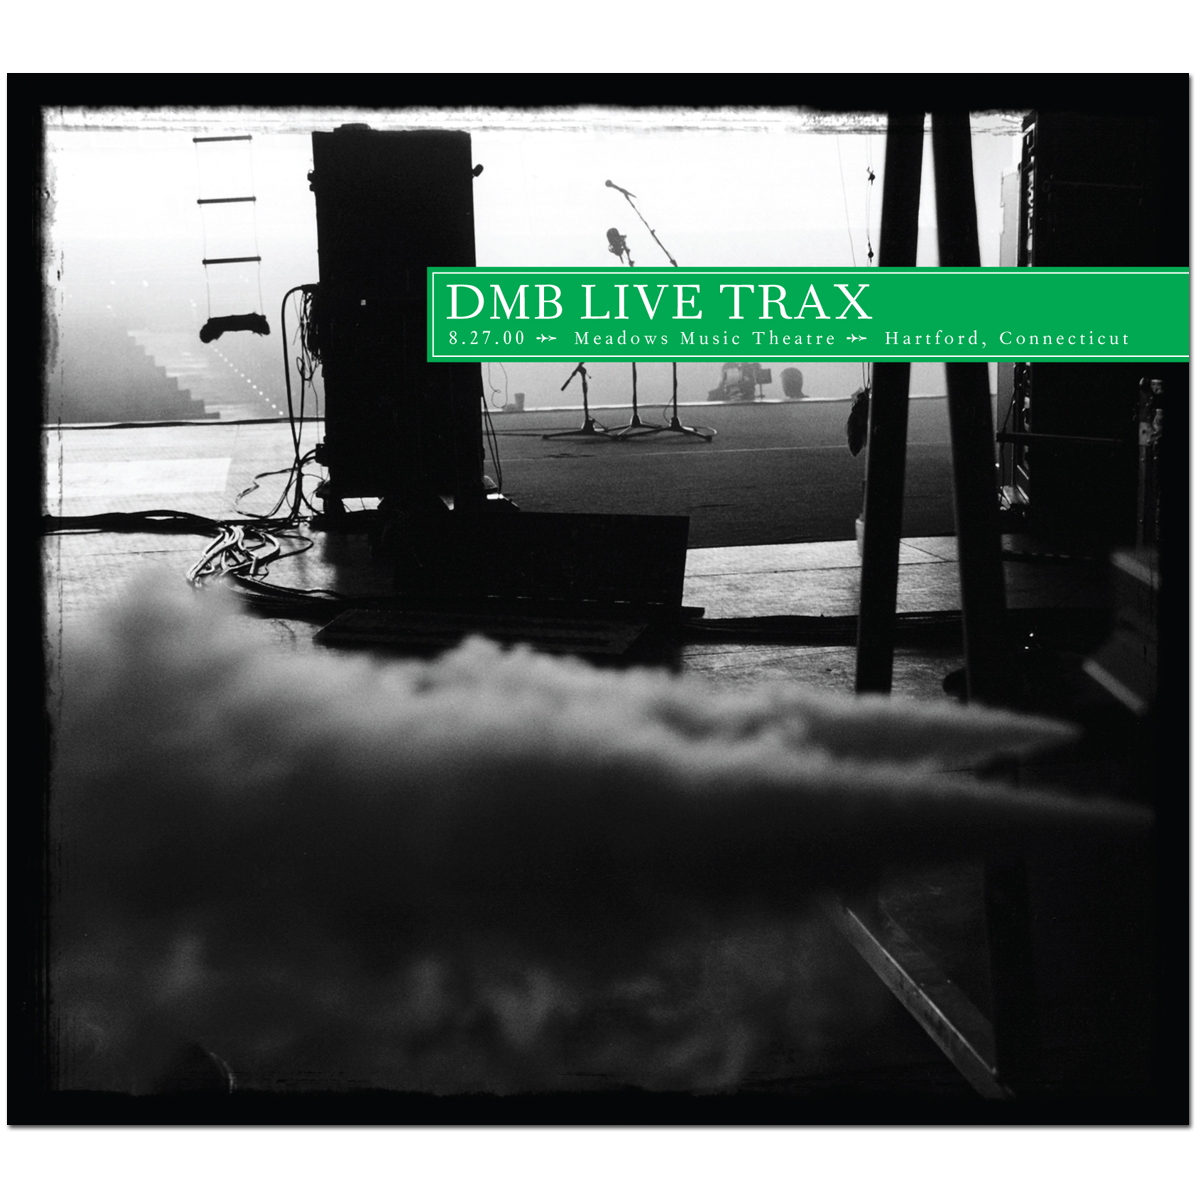 Dave Matthews Band - 2000-08-27: DMB Live Trax, Volume 3: Meadows Music Theatre,